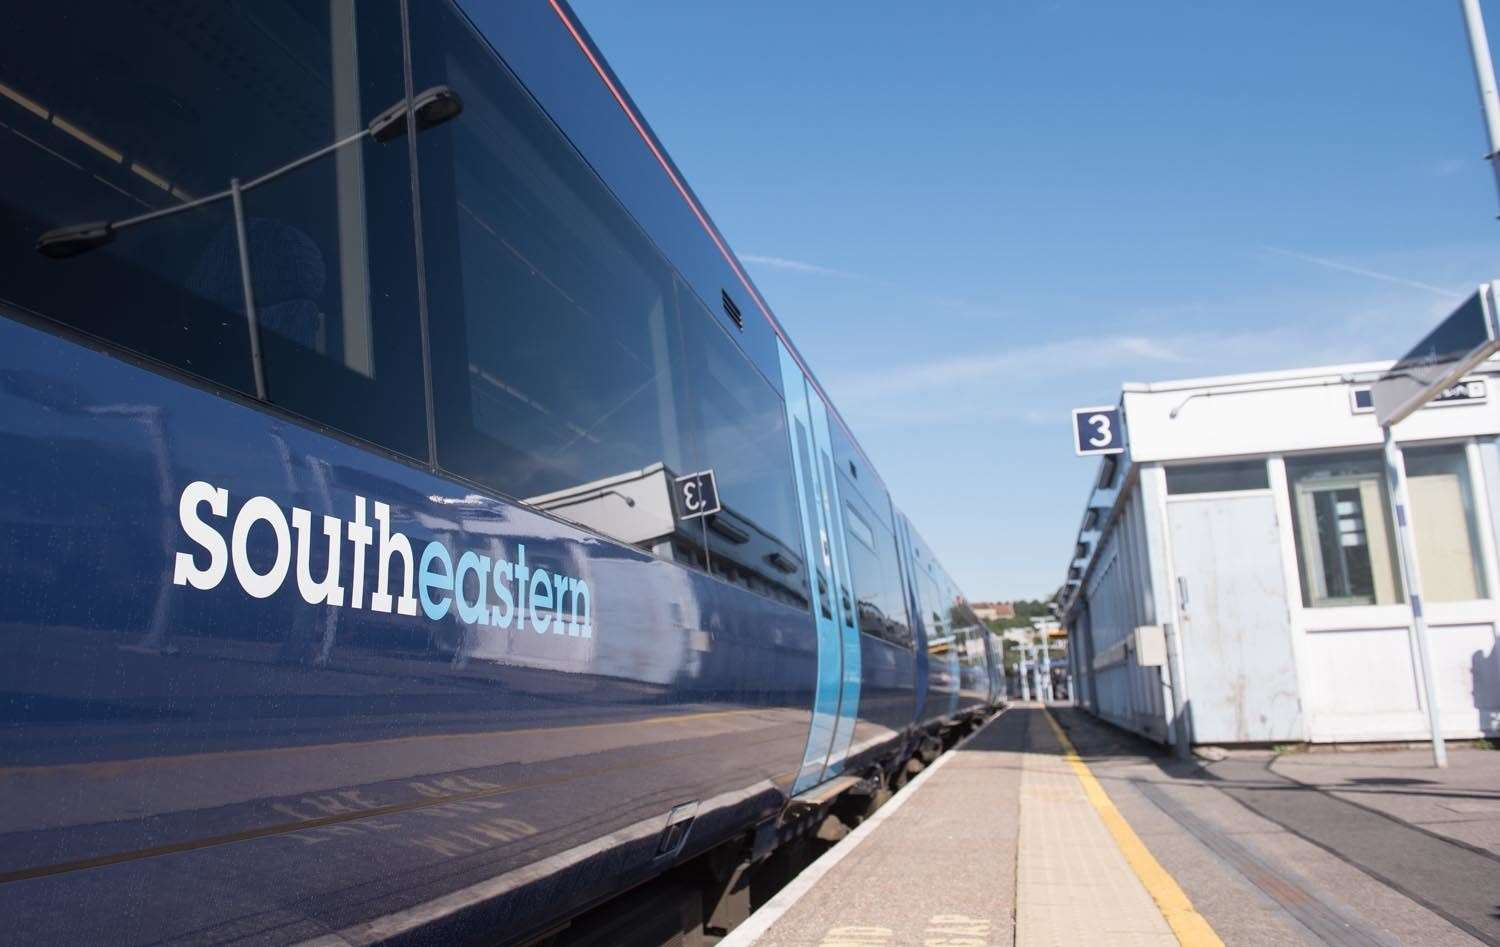 A Southeastern train. Stock picture (15991415)